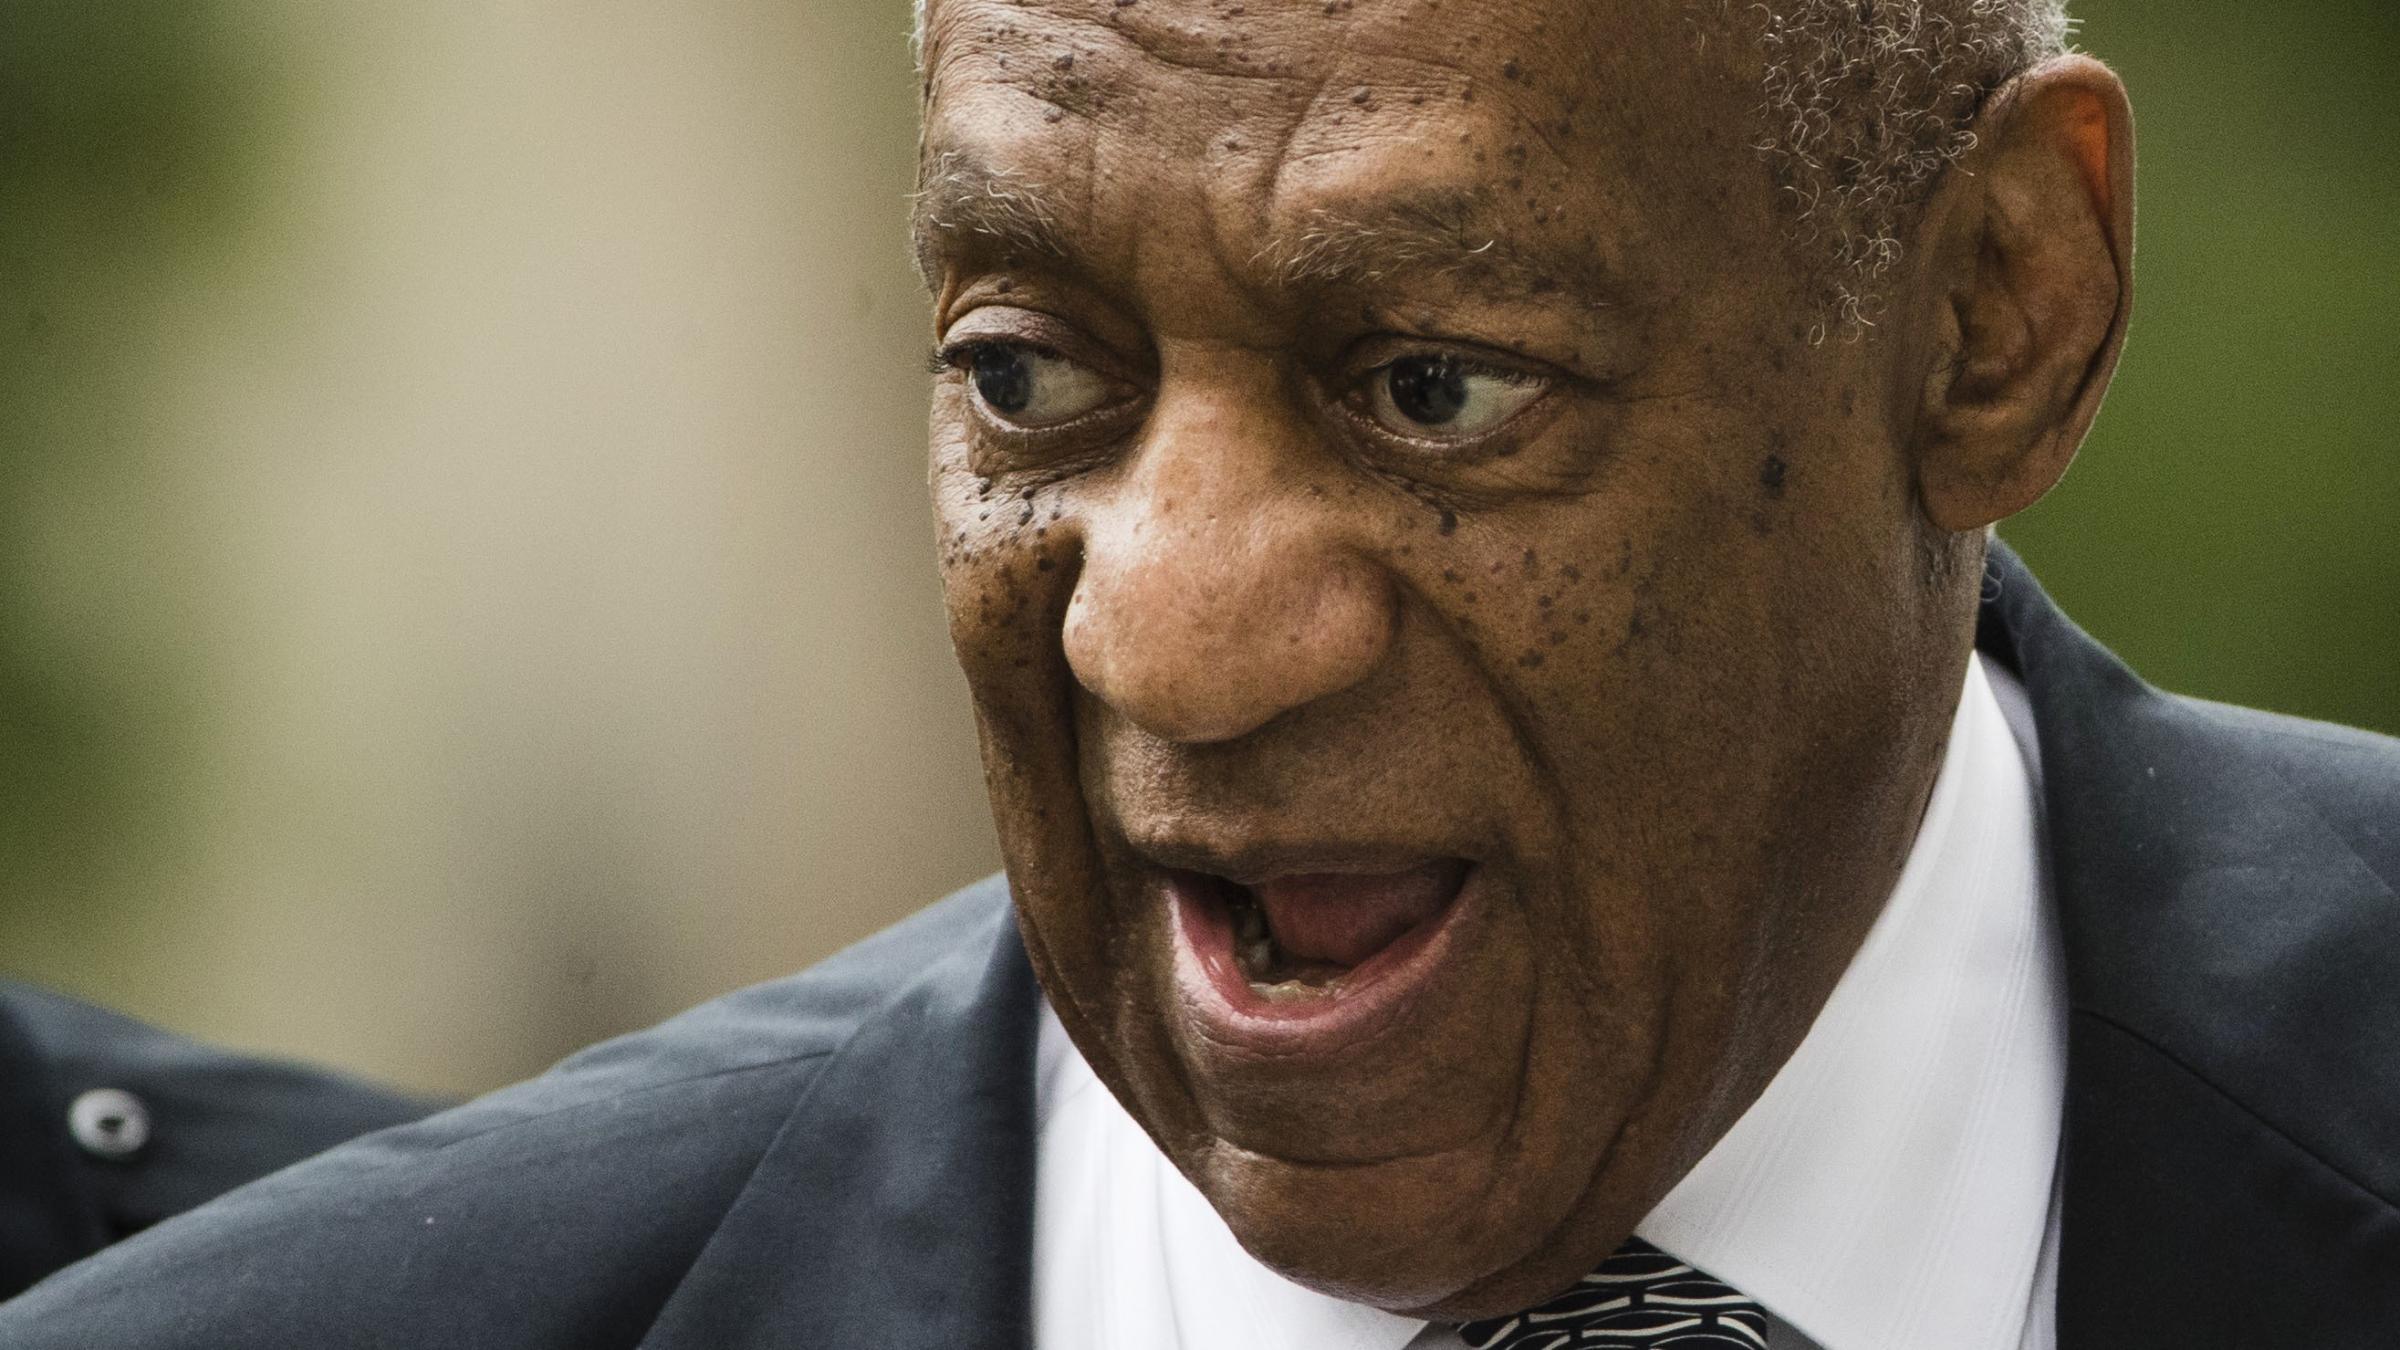 On Day 5, Cosby jury asks for definition of reasonable doubt